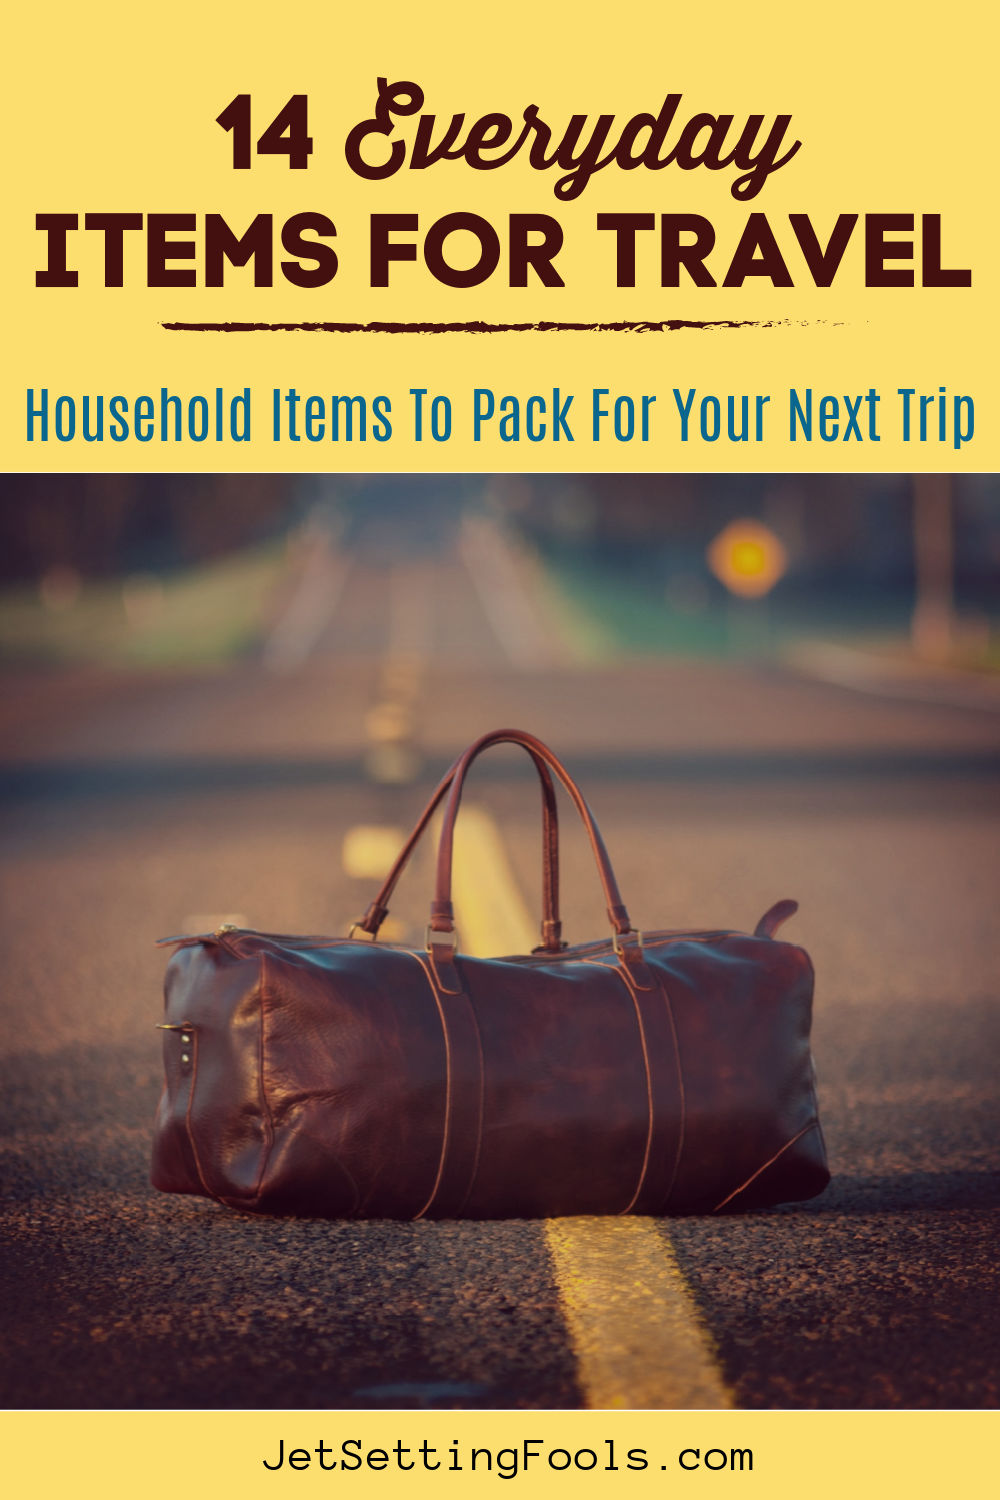 Everyday Items for Travel by JetSettingFools.com